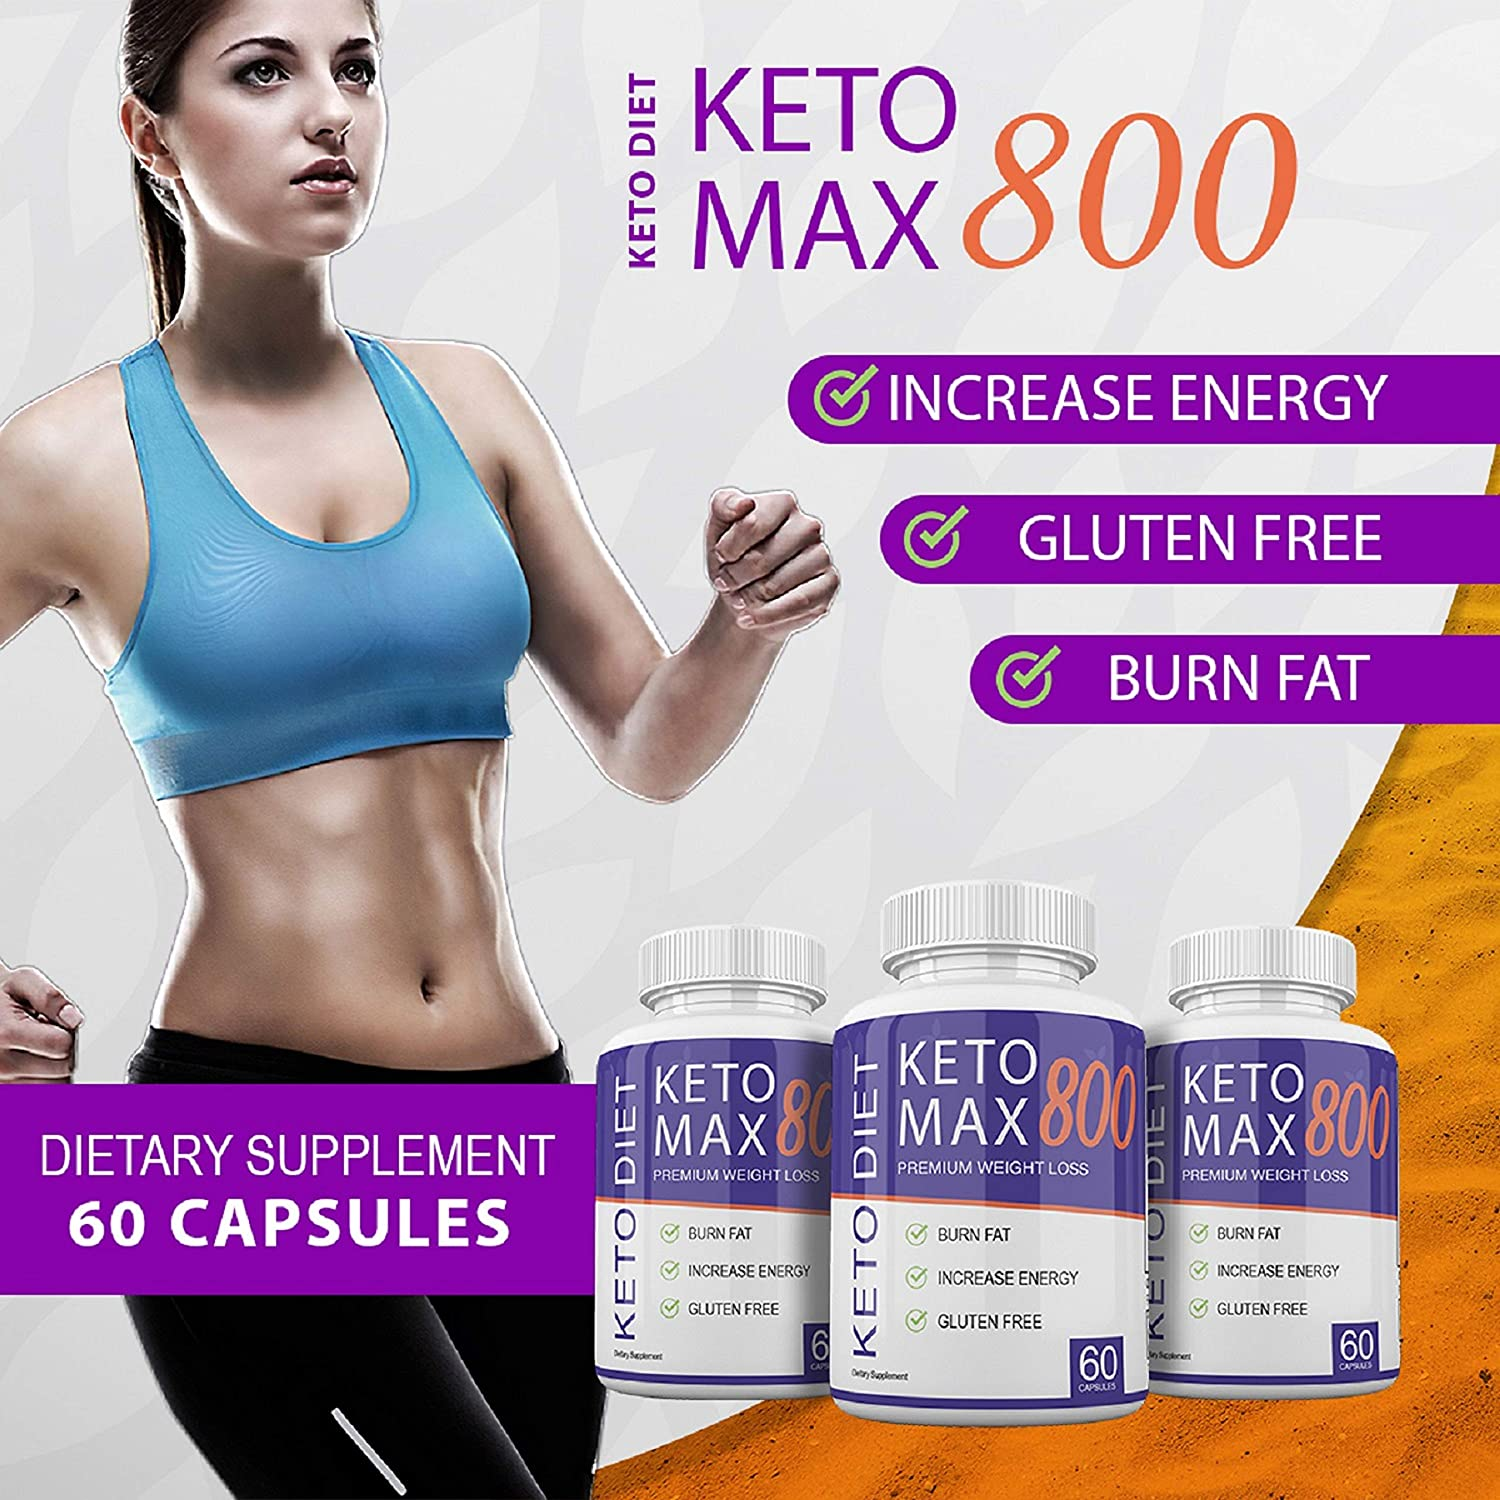 What Are The Ingredients In Keto Now Max?